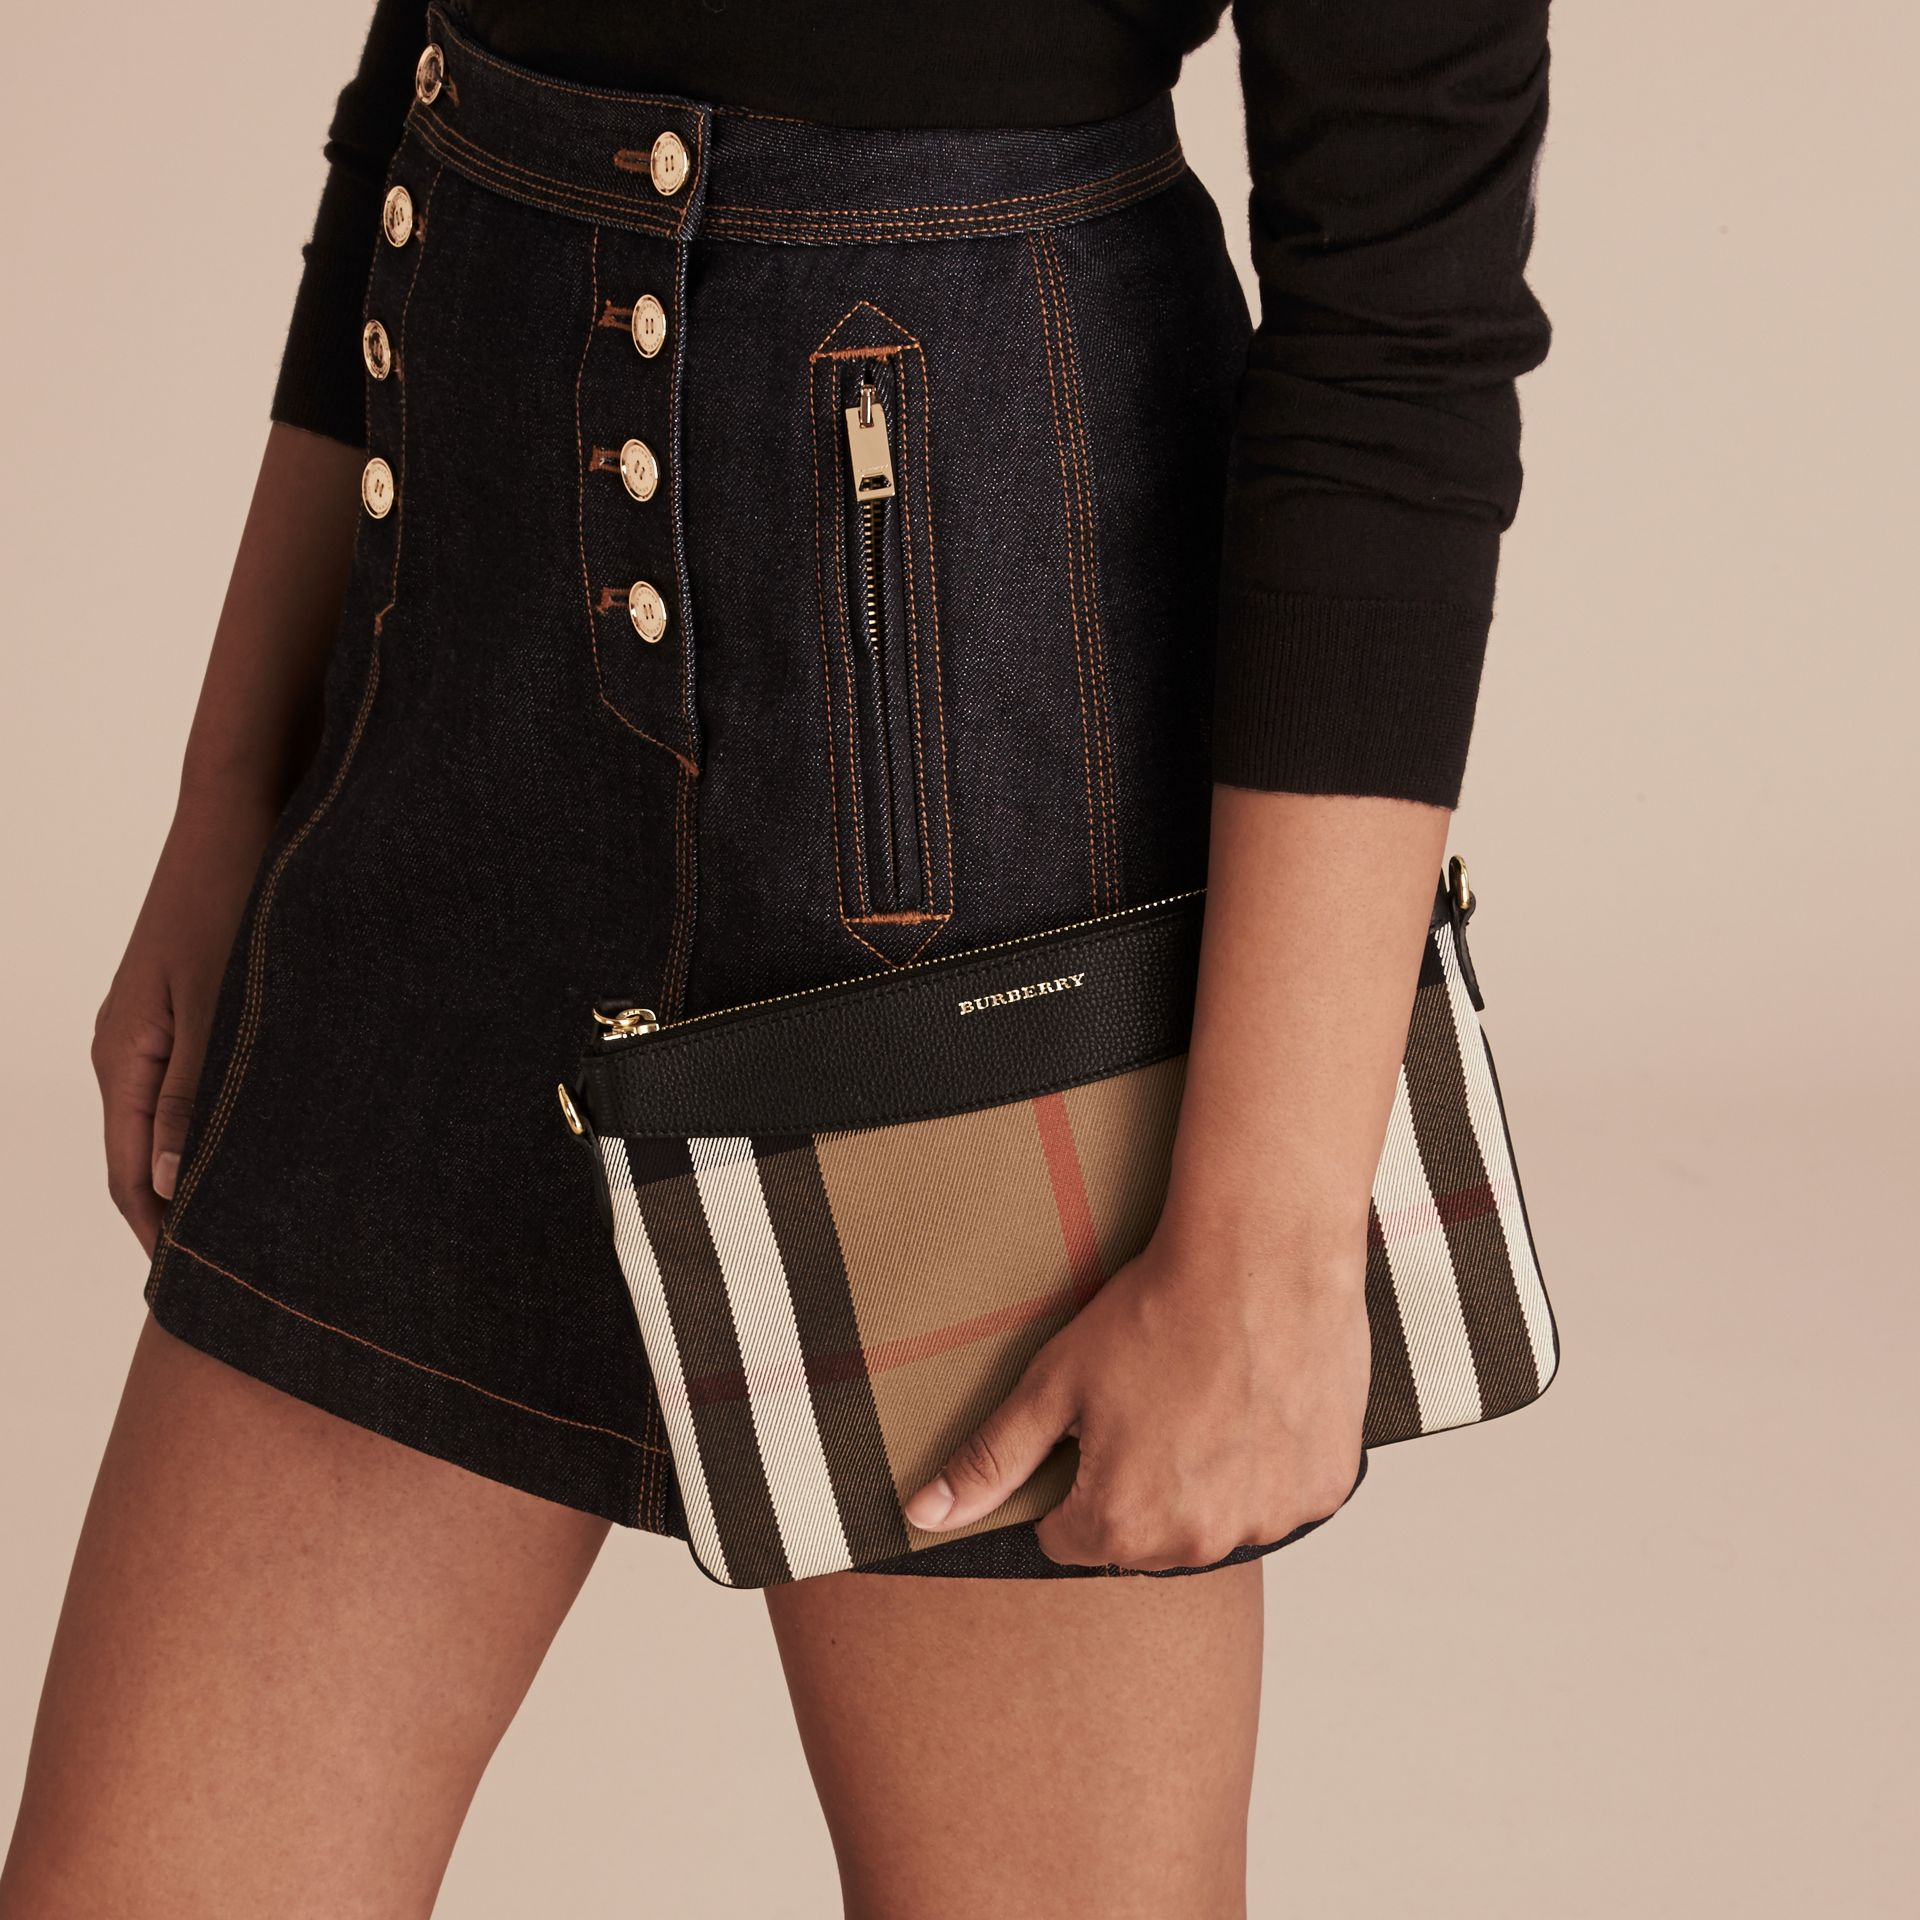 House Check and Leather Clutch Bag in Black - Women | Burberry United Kingdom - gallery image 5